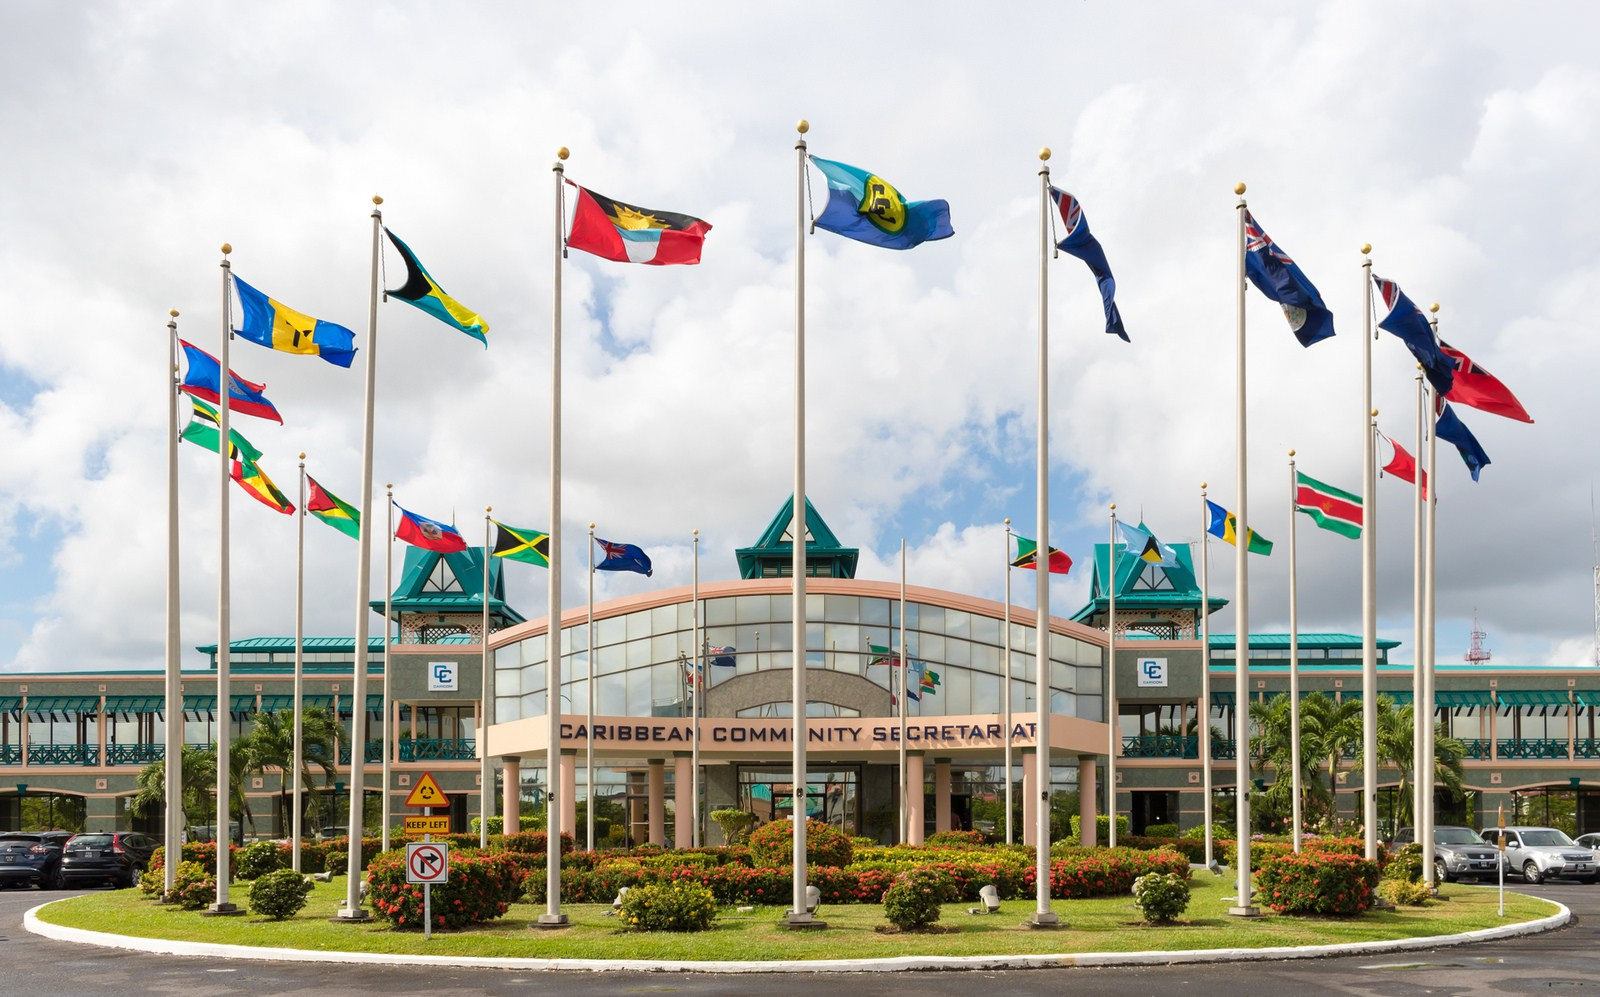 A Building Energy Efficiency Project was introduced at the CARICOM Secretariat in December 2014